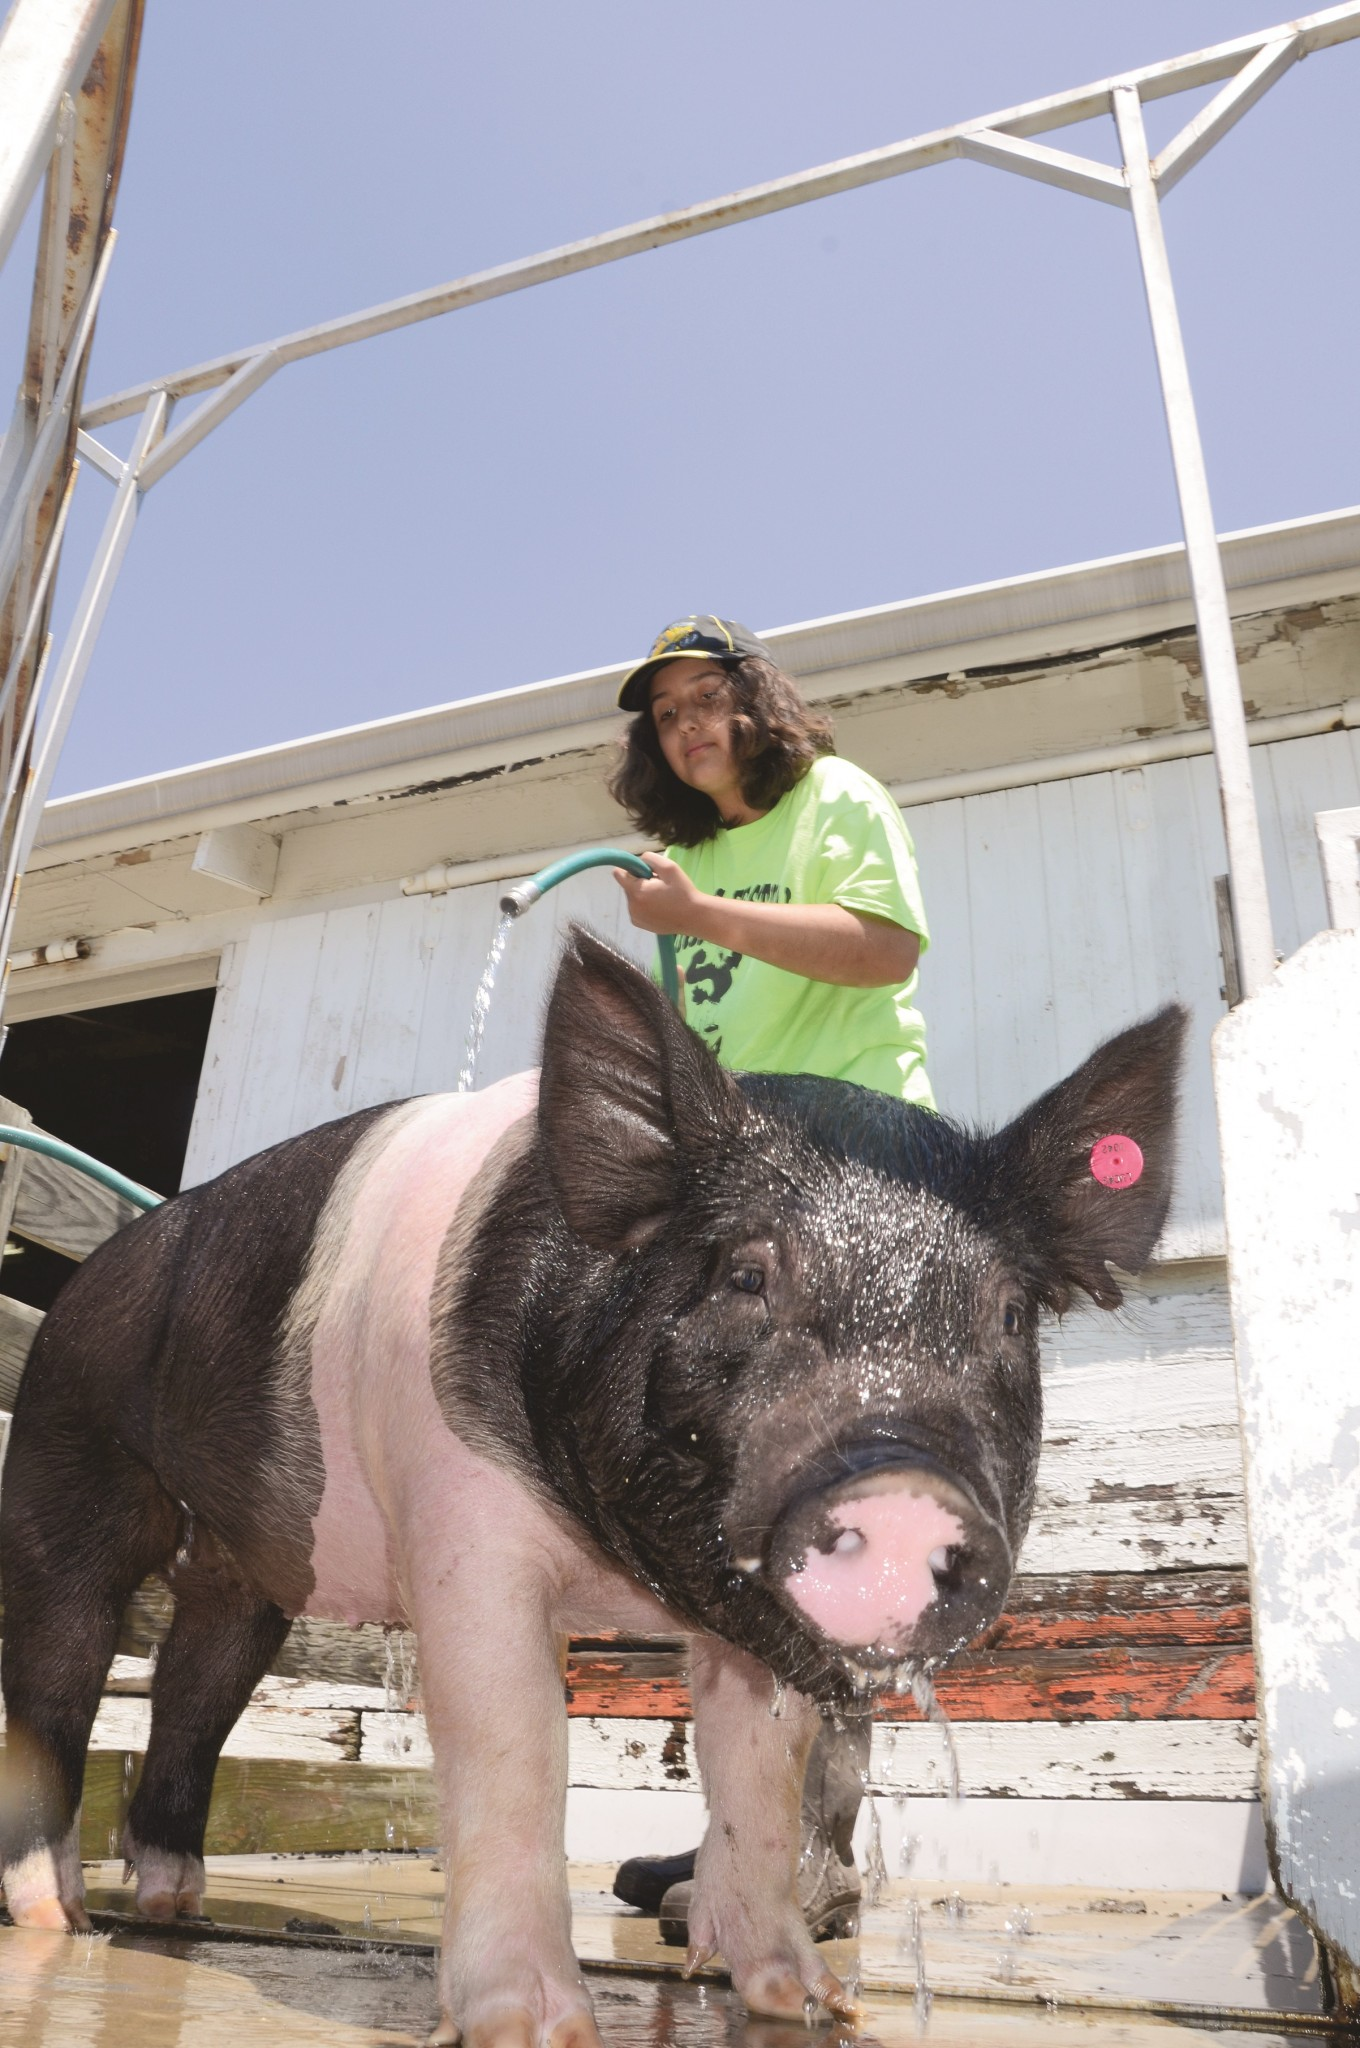 The 162nd Annual Lucas County Fair will be held July 13-19 at the county fairgrounds in Maumee in a modified format due to the COVID-19 pandemic. As always, 4H and FFA youths will be presenting their projects for exhibition and judging. Complete details and a full schedule are available on the fair website, lucascountyfair.com. (Press photo by Ken Grosjean)